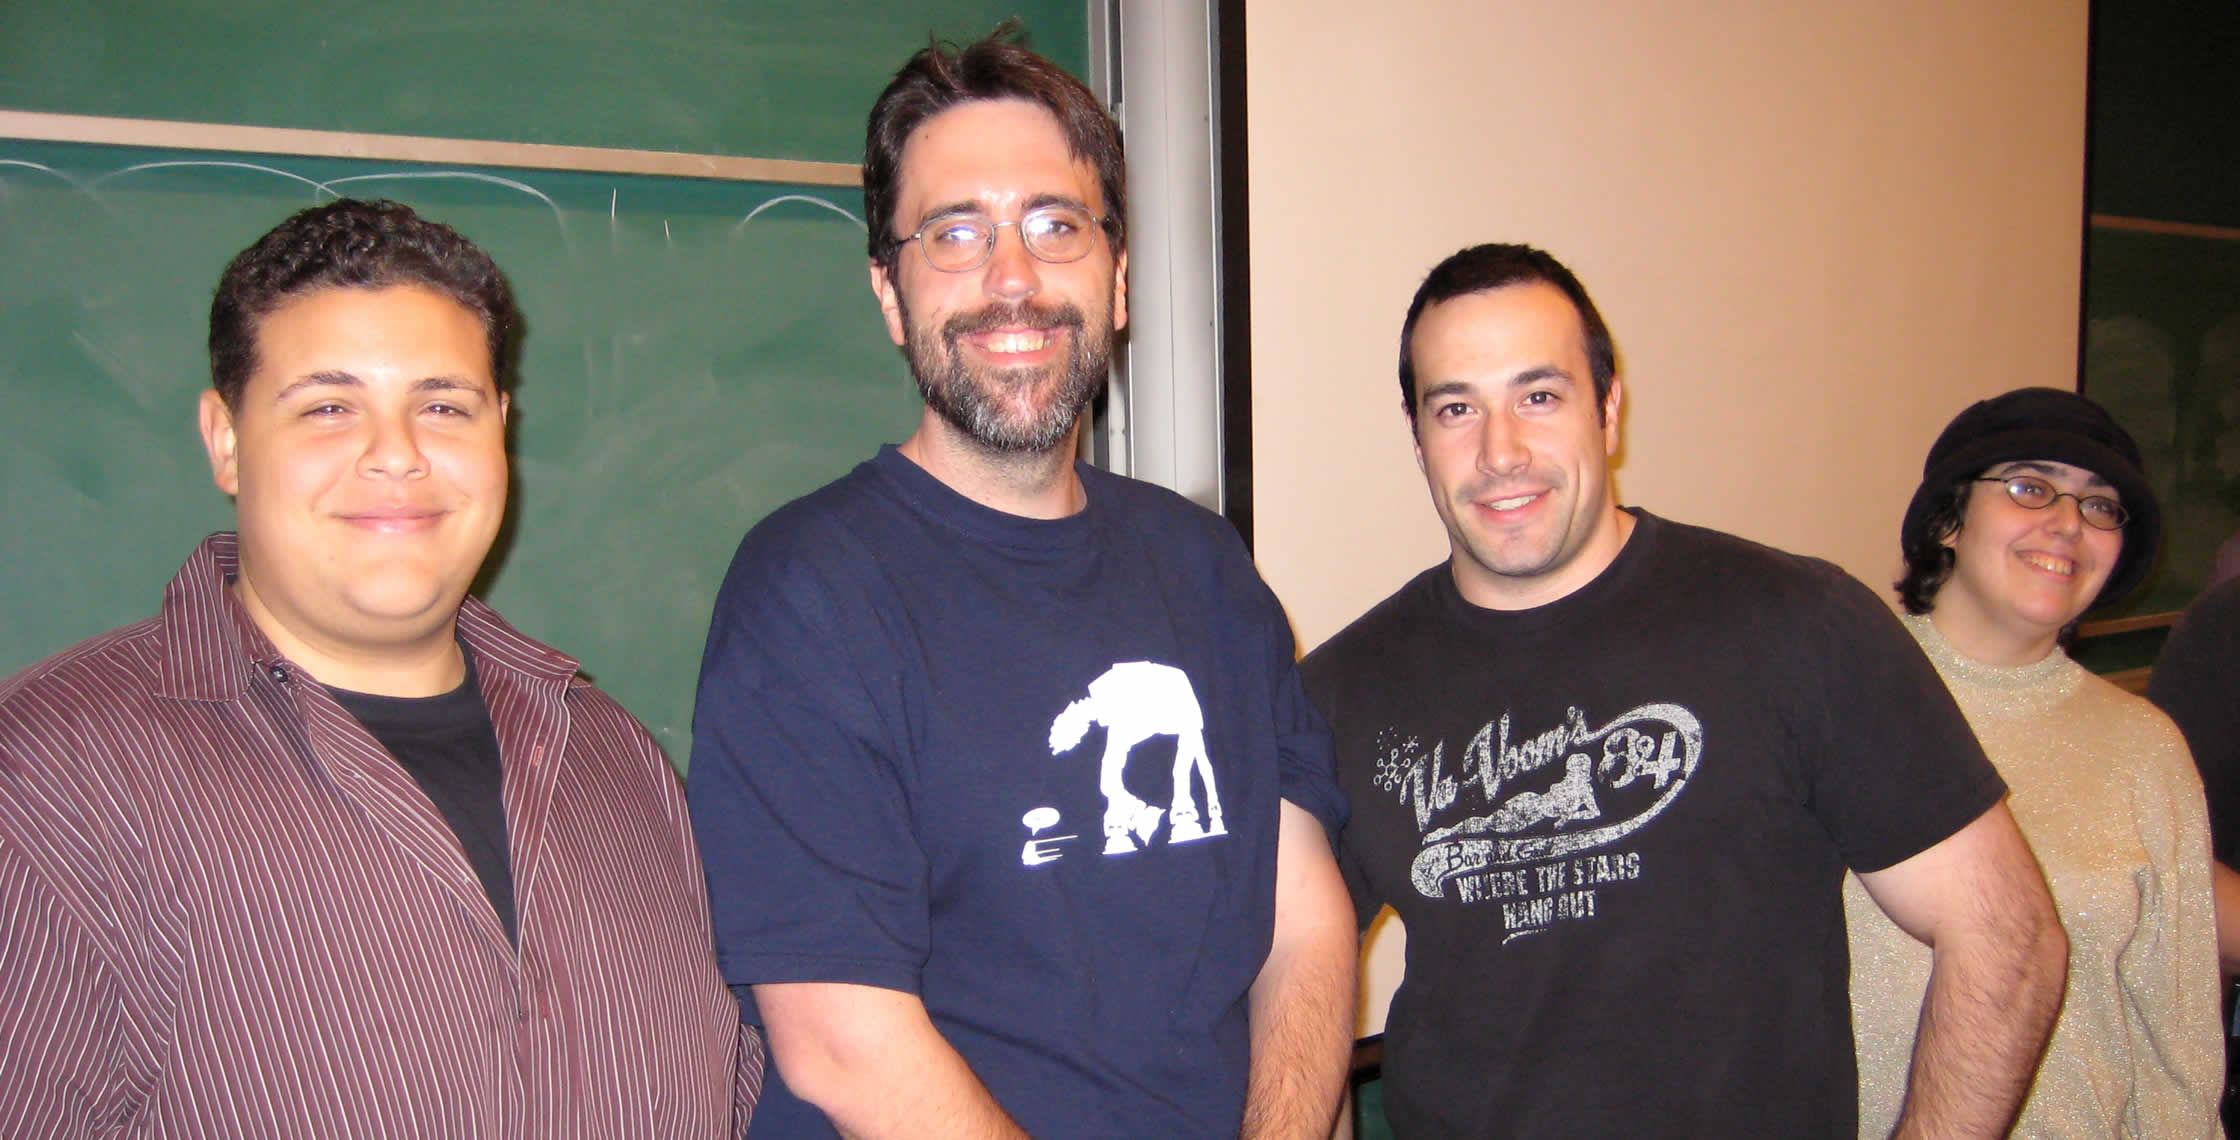 Ben Nadel at the New York ColdFusion User Group (Feb. 2008) with: Clark Valberg, Ray Camden, and Judith Dinowitz